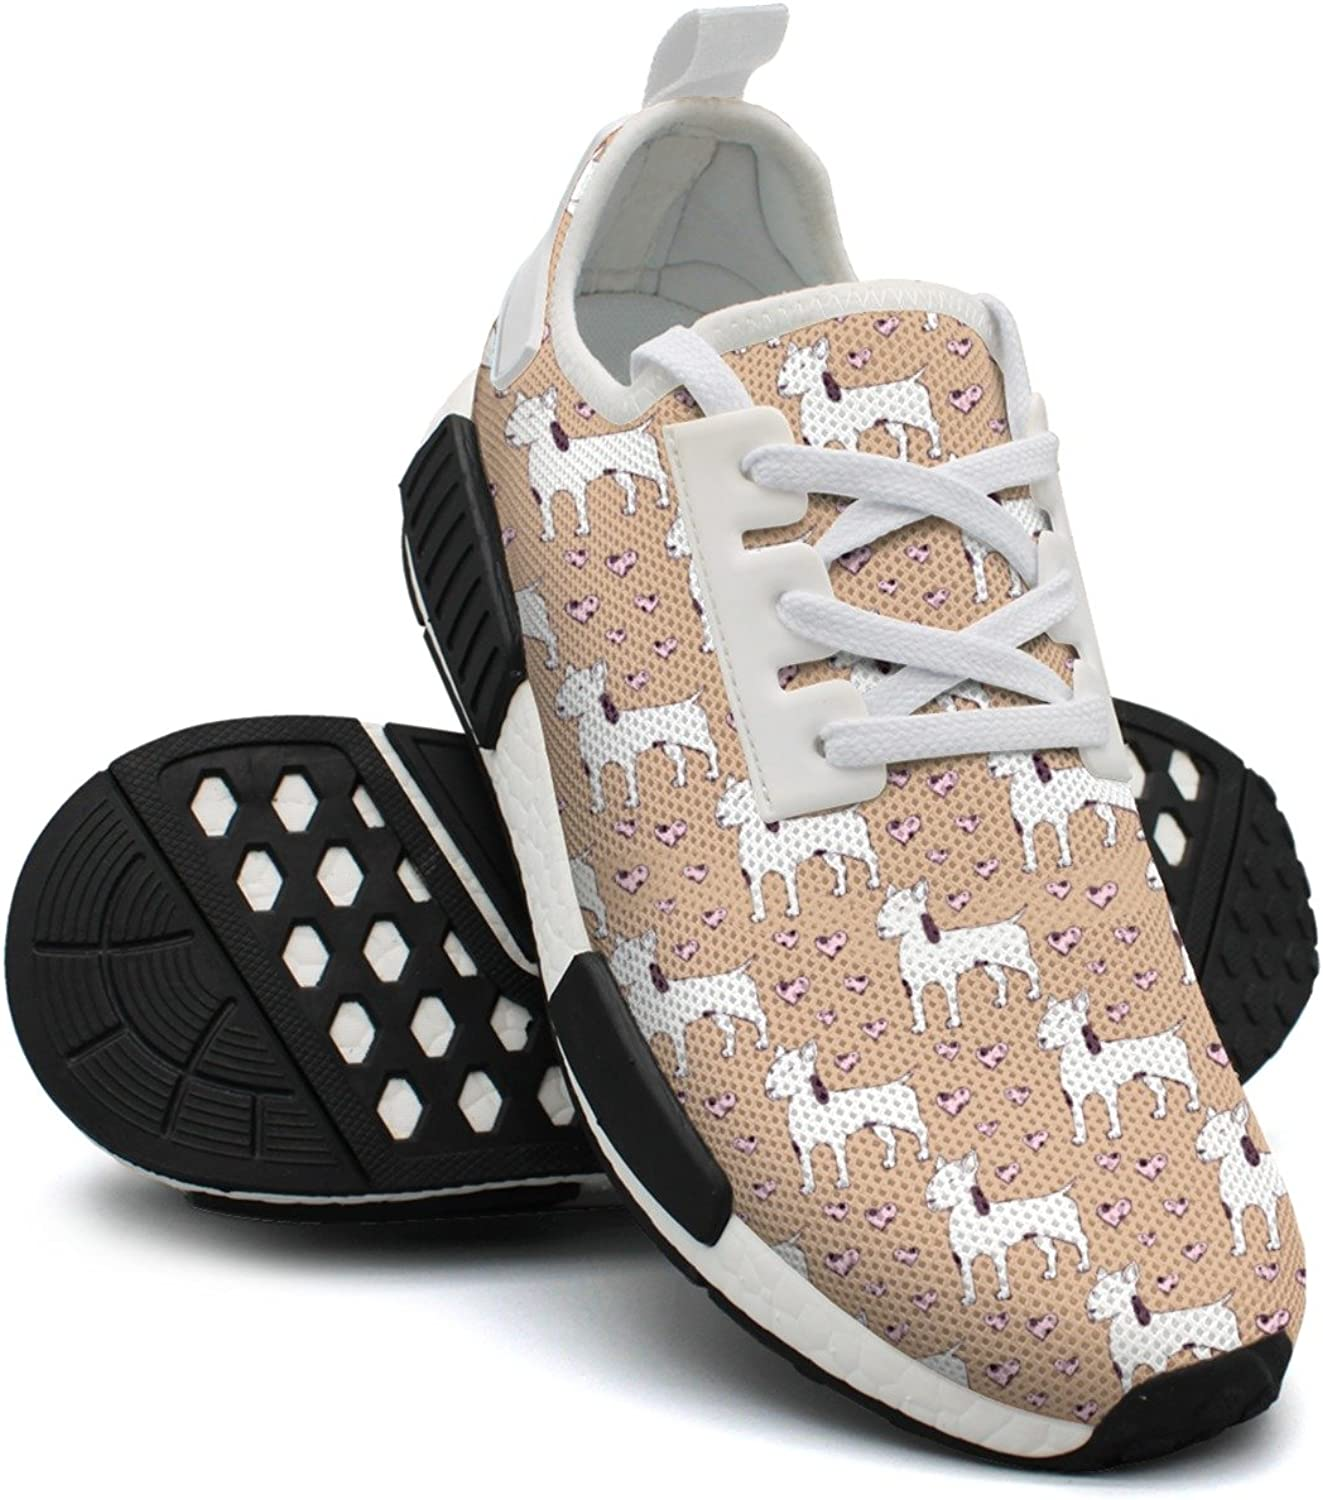 Dogs and Hearts Women's Jogger Lightweight Volleyball Sneakers Gym Outdoor Running shoes